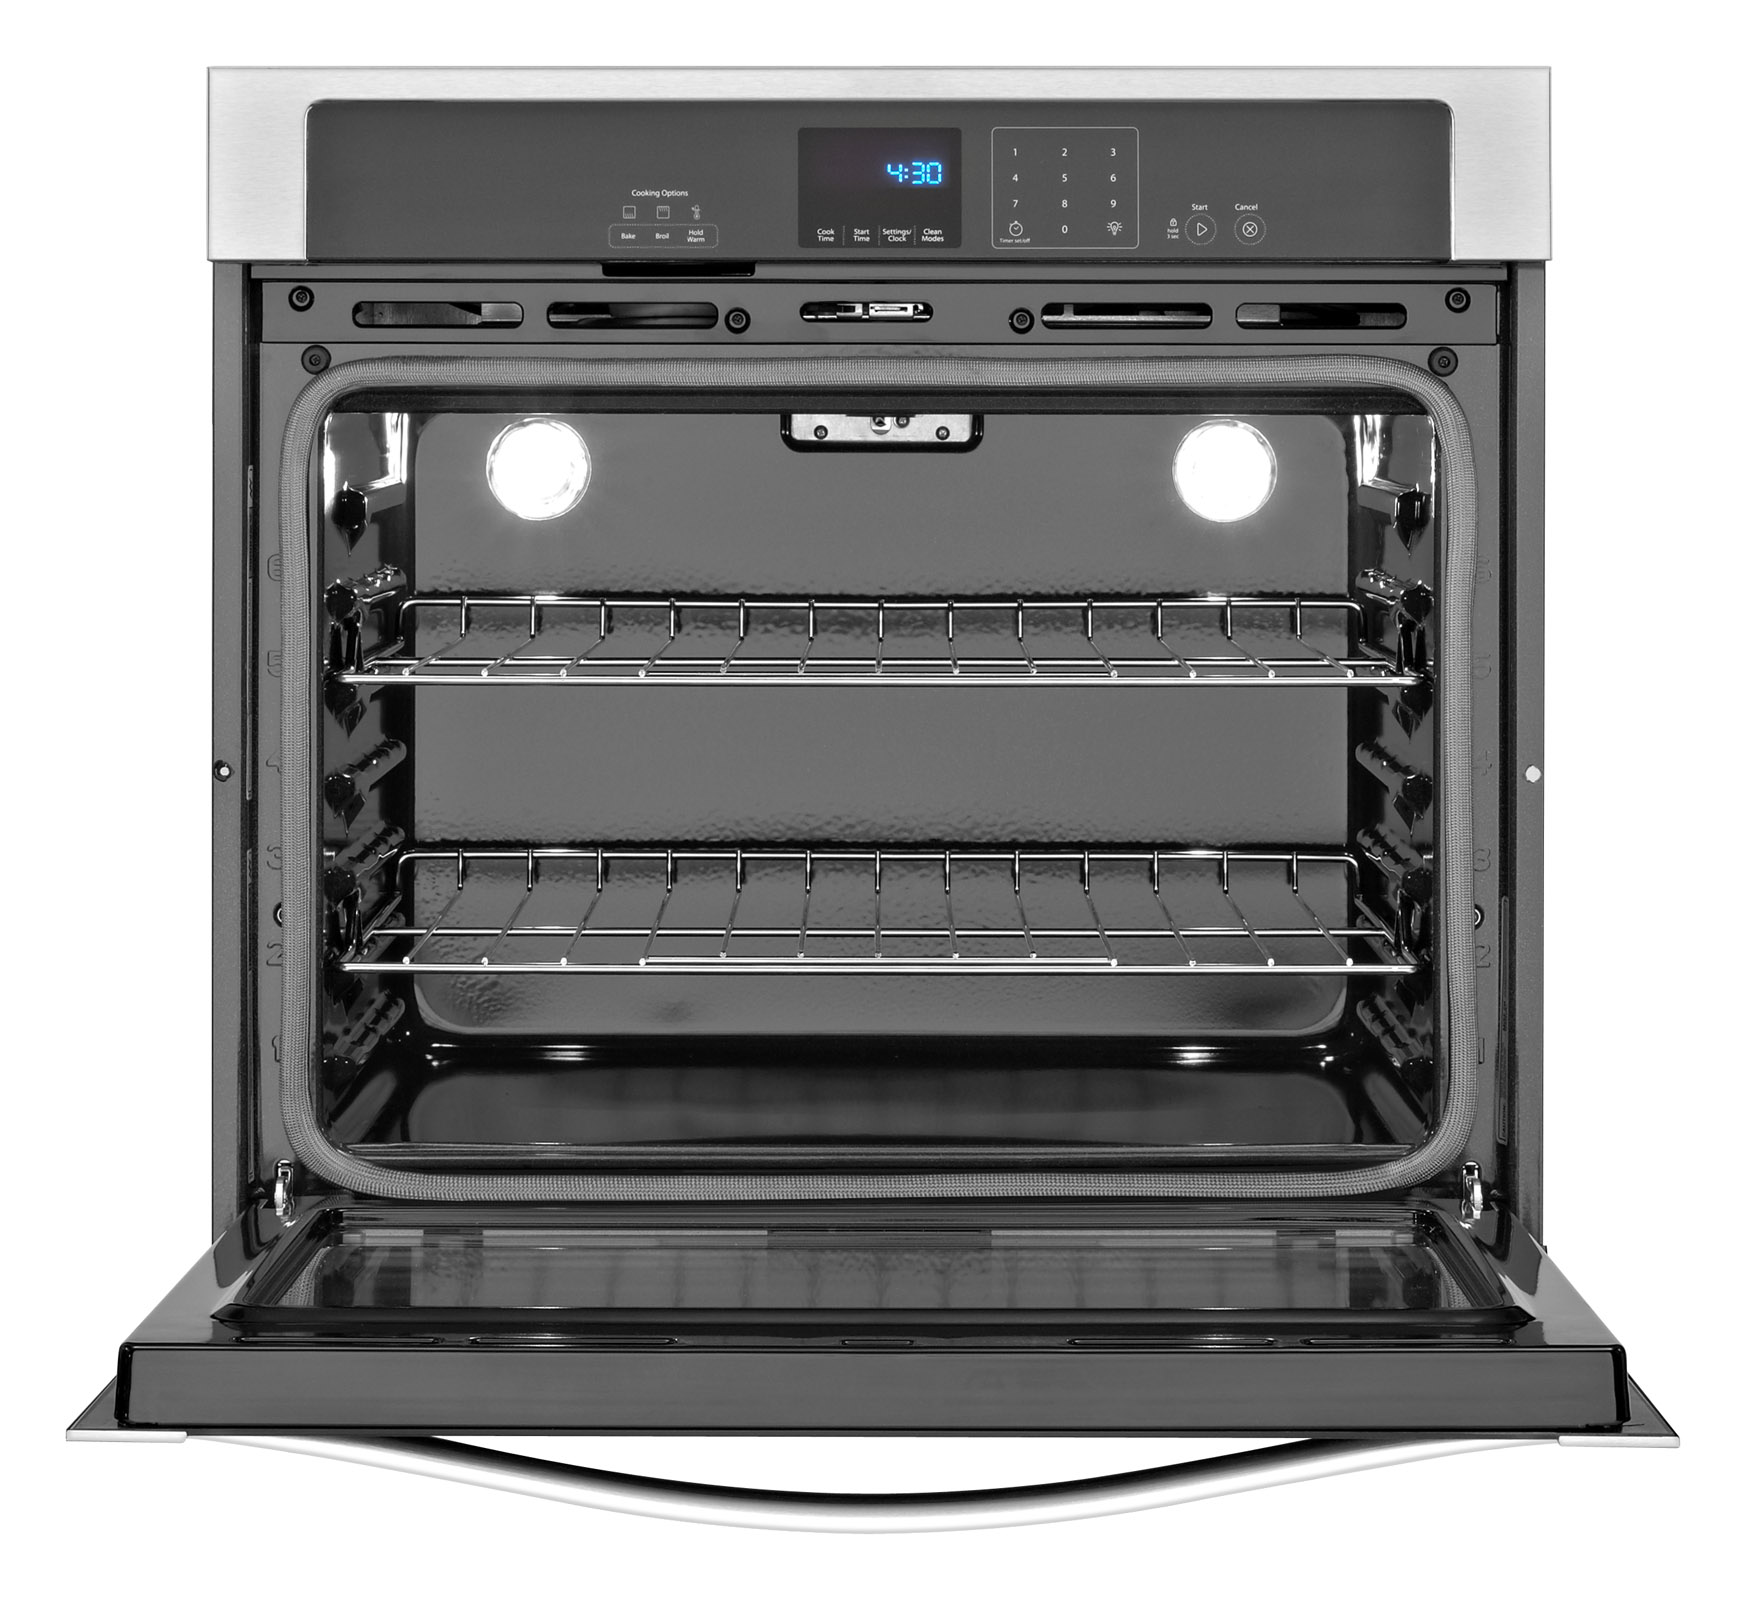 "Whirlpool WOS51EC0AB 30"" Electric Wall Oven w/ SteamClean - Black"